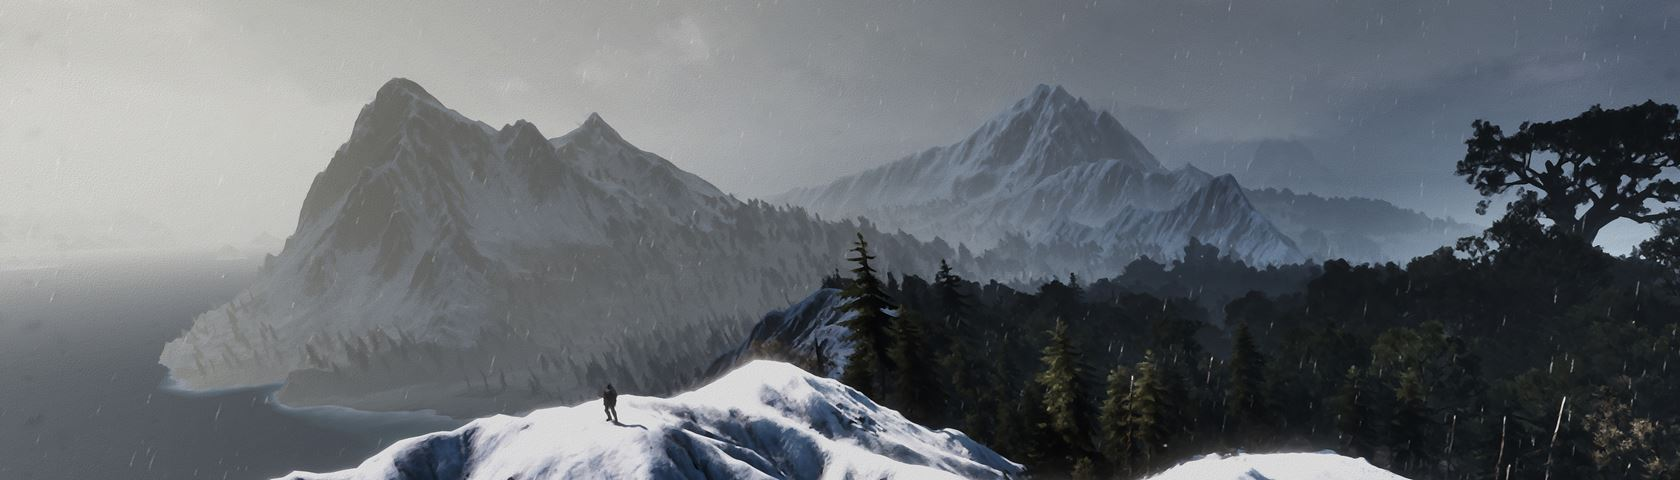 Witcher 3 - Mountain Tops